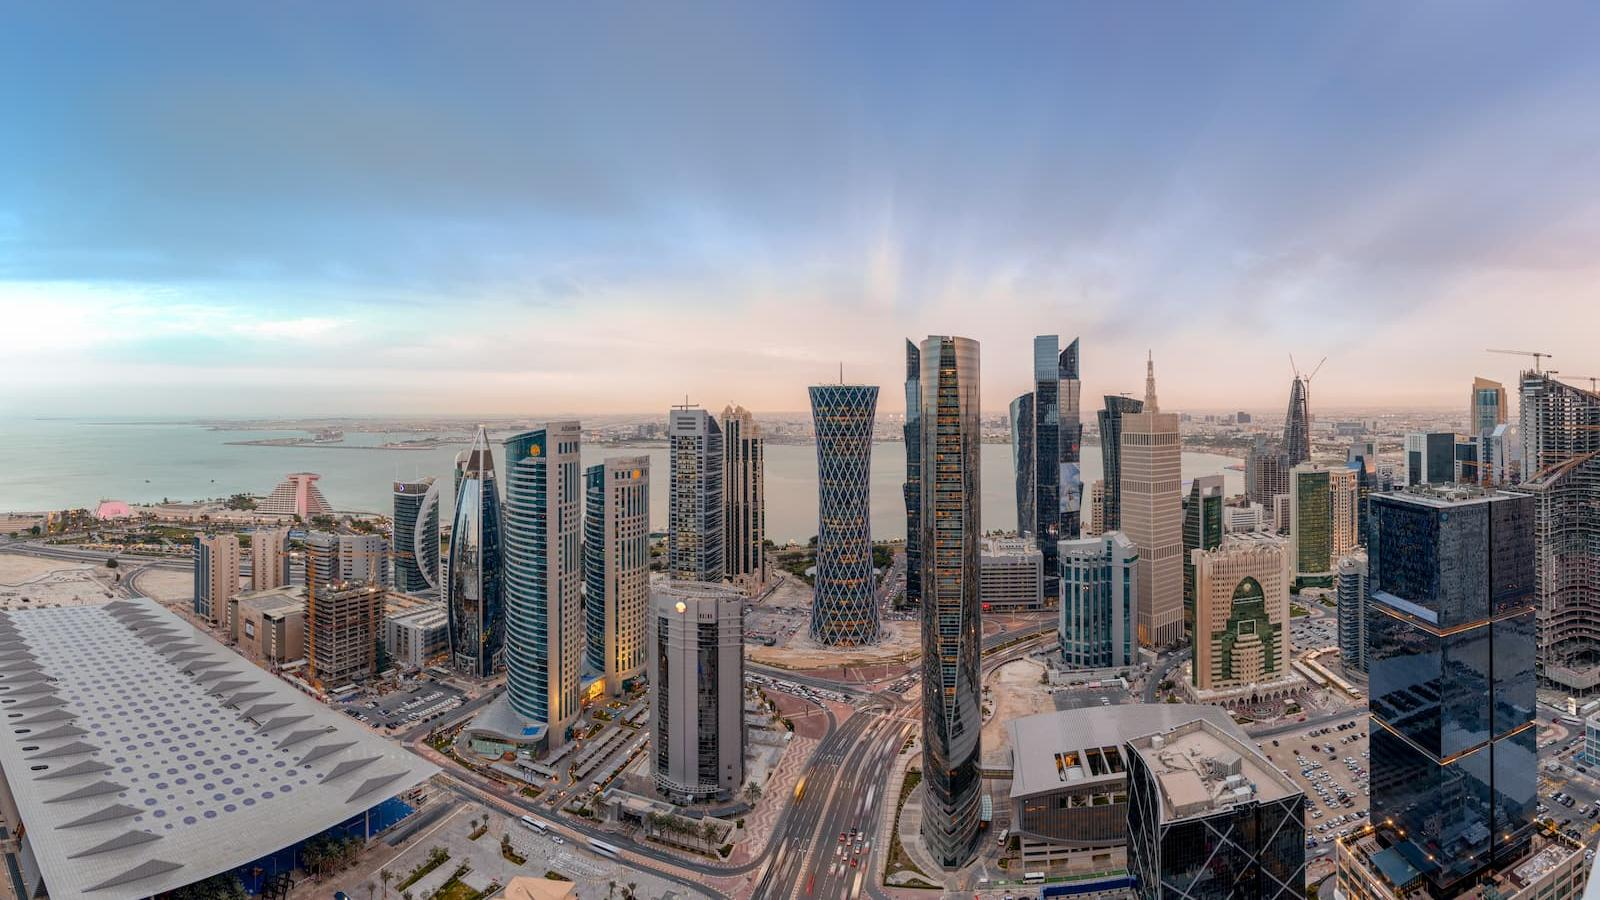 Qatar reiterates commitment to protect migrant workers amid COVID-19 crisis